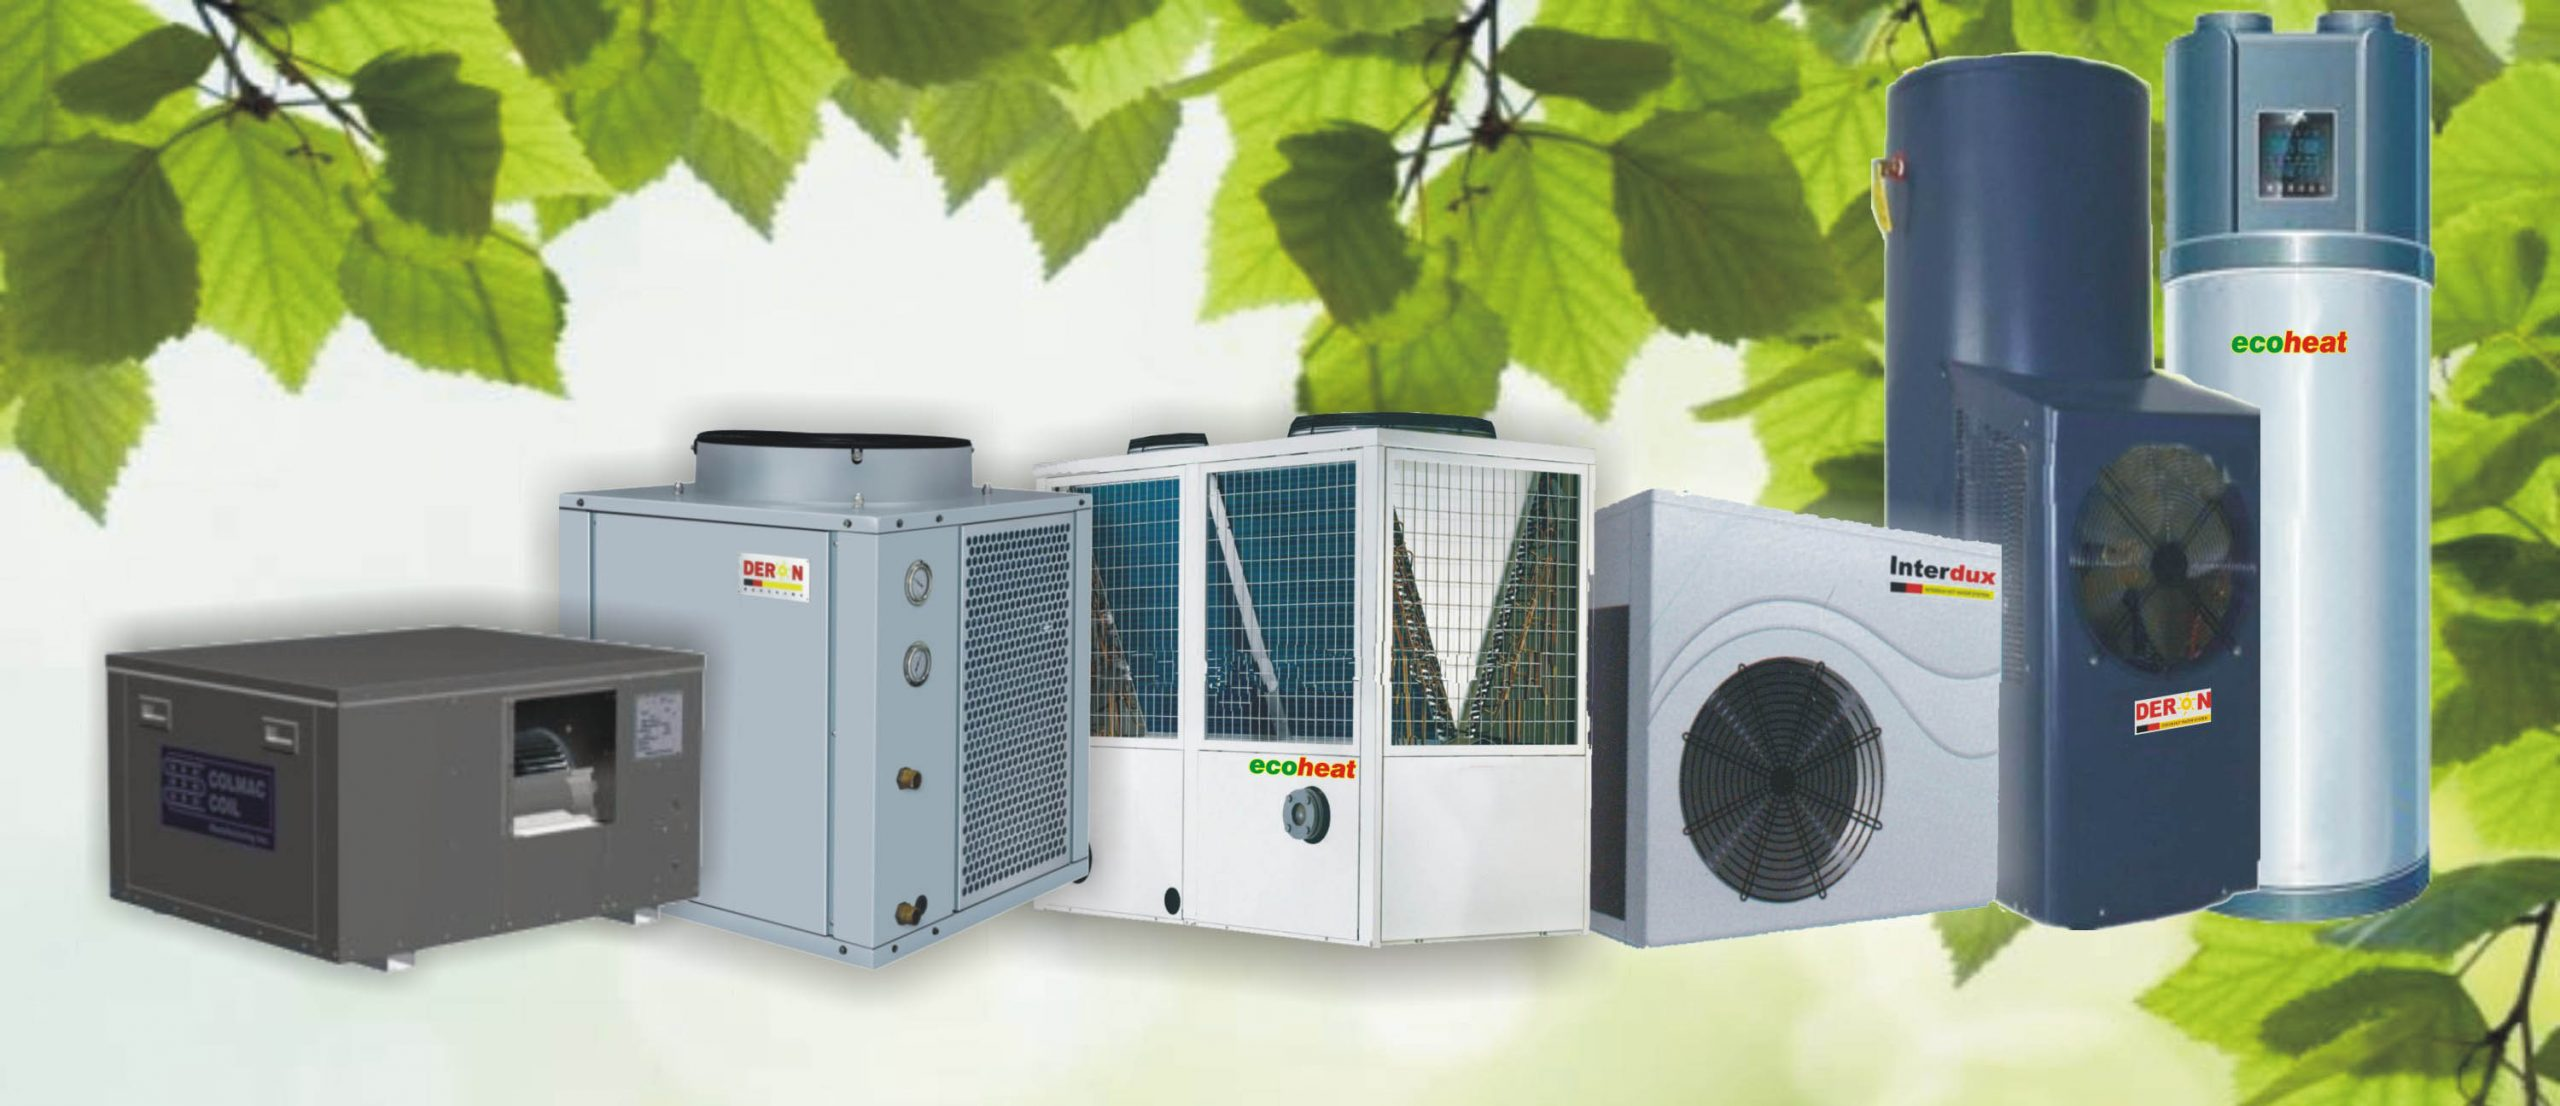 Keunggulan Heat Pump 1